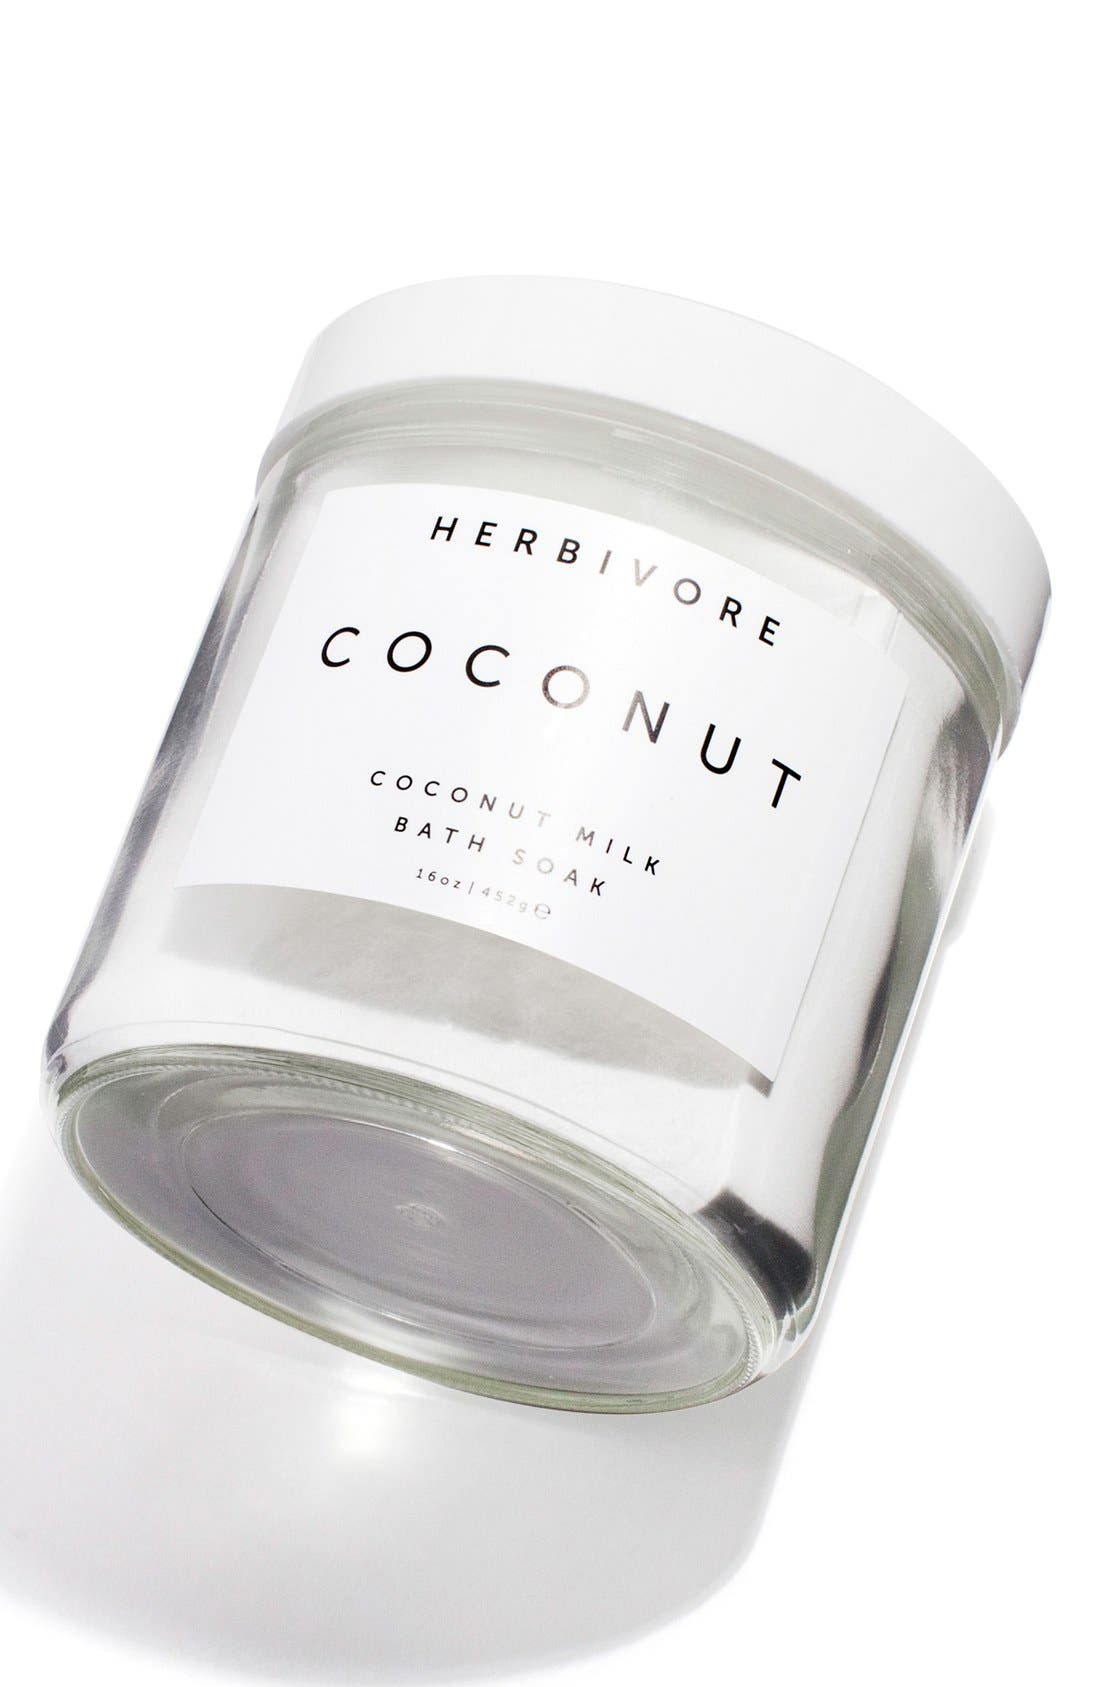 HERBIVORE BOTANICALS, Coconut Soak, Alternate thumbnail 3, color, NO COLOR 2